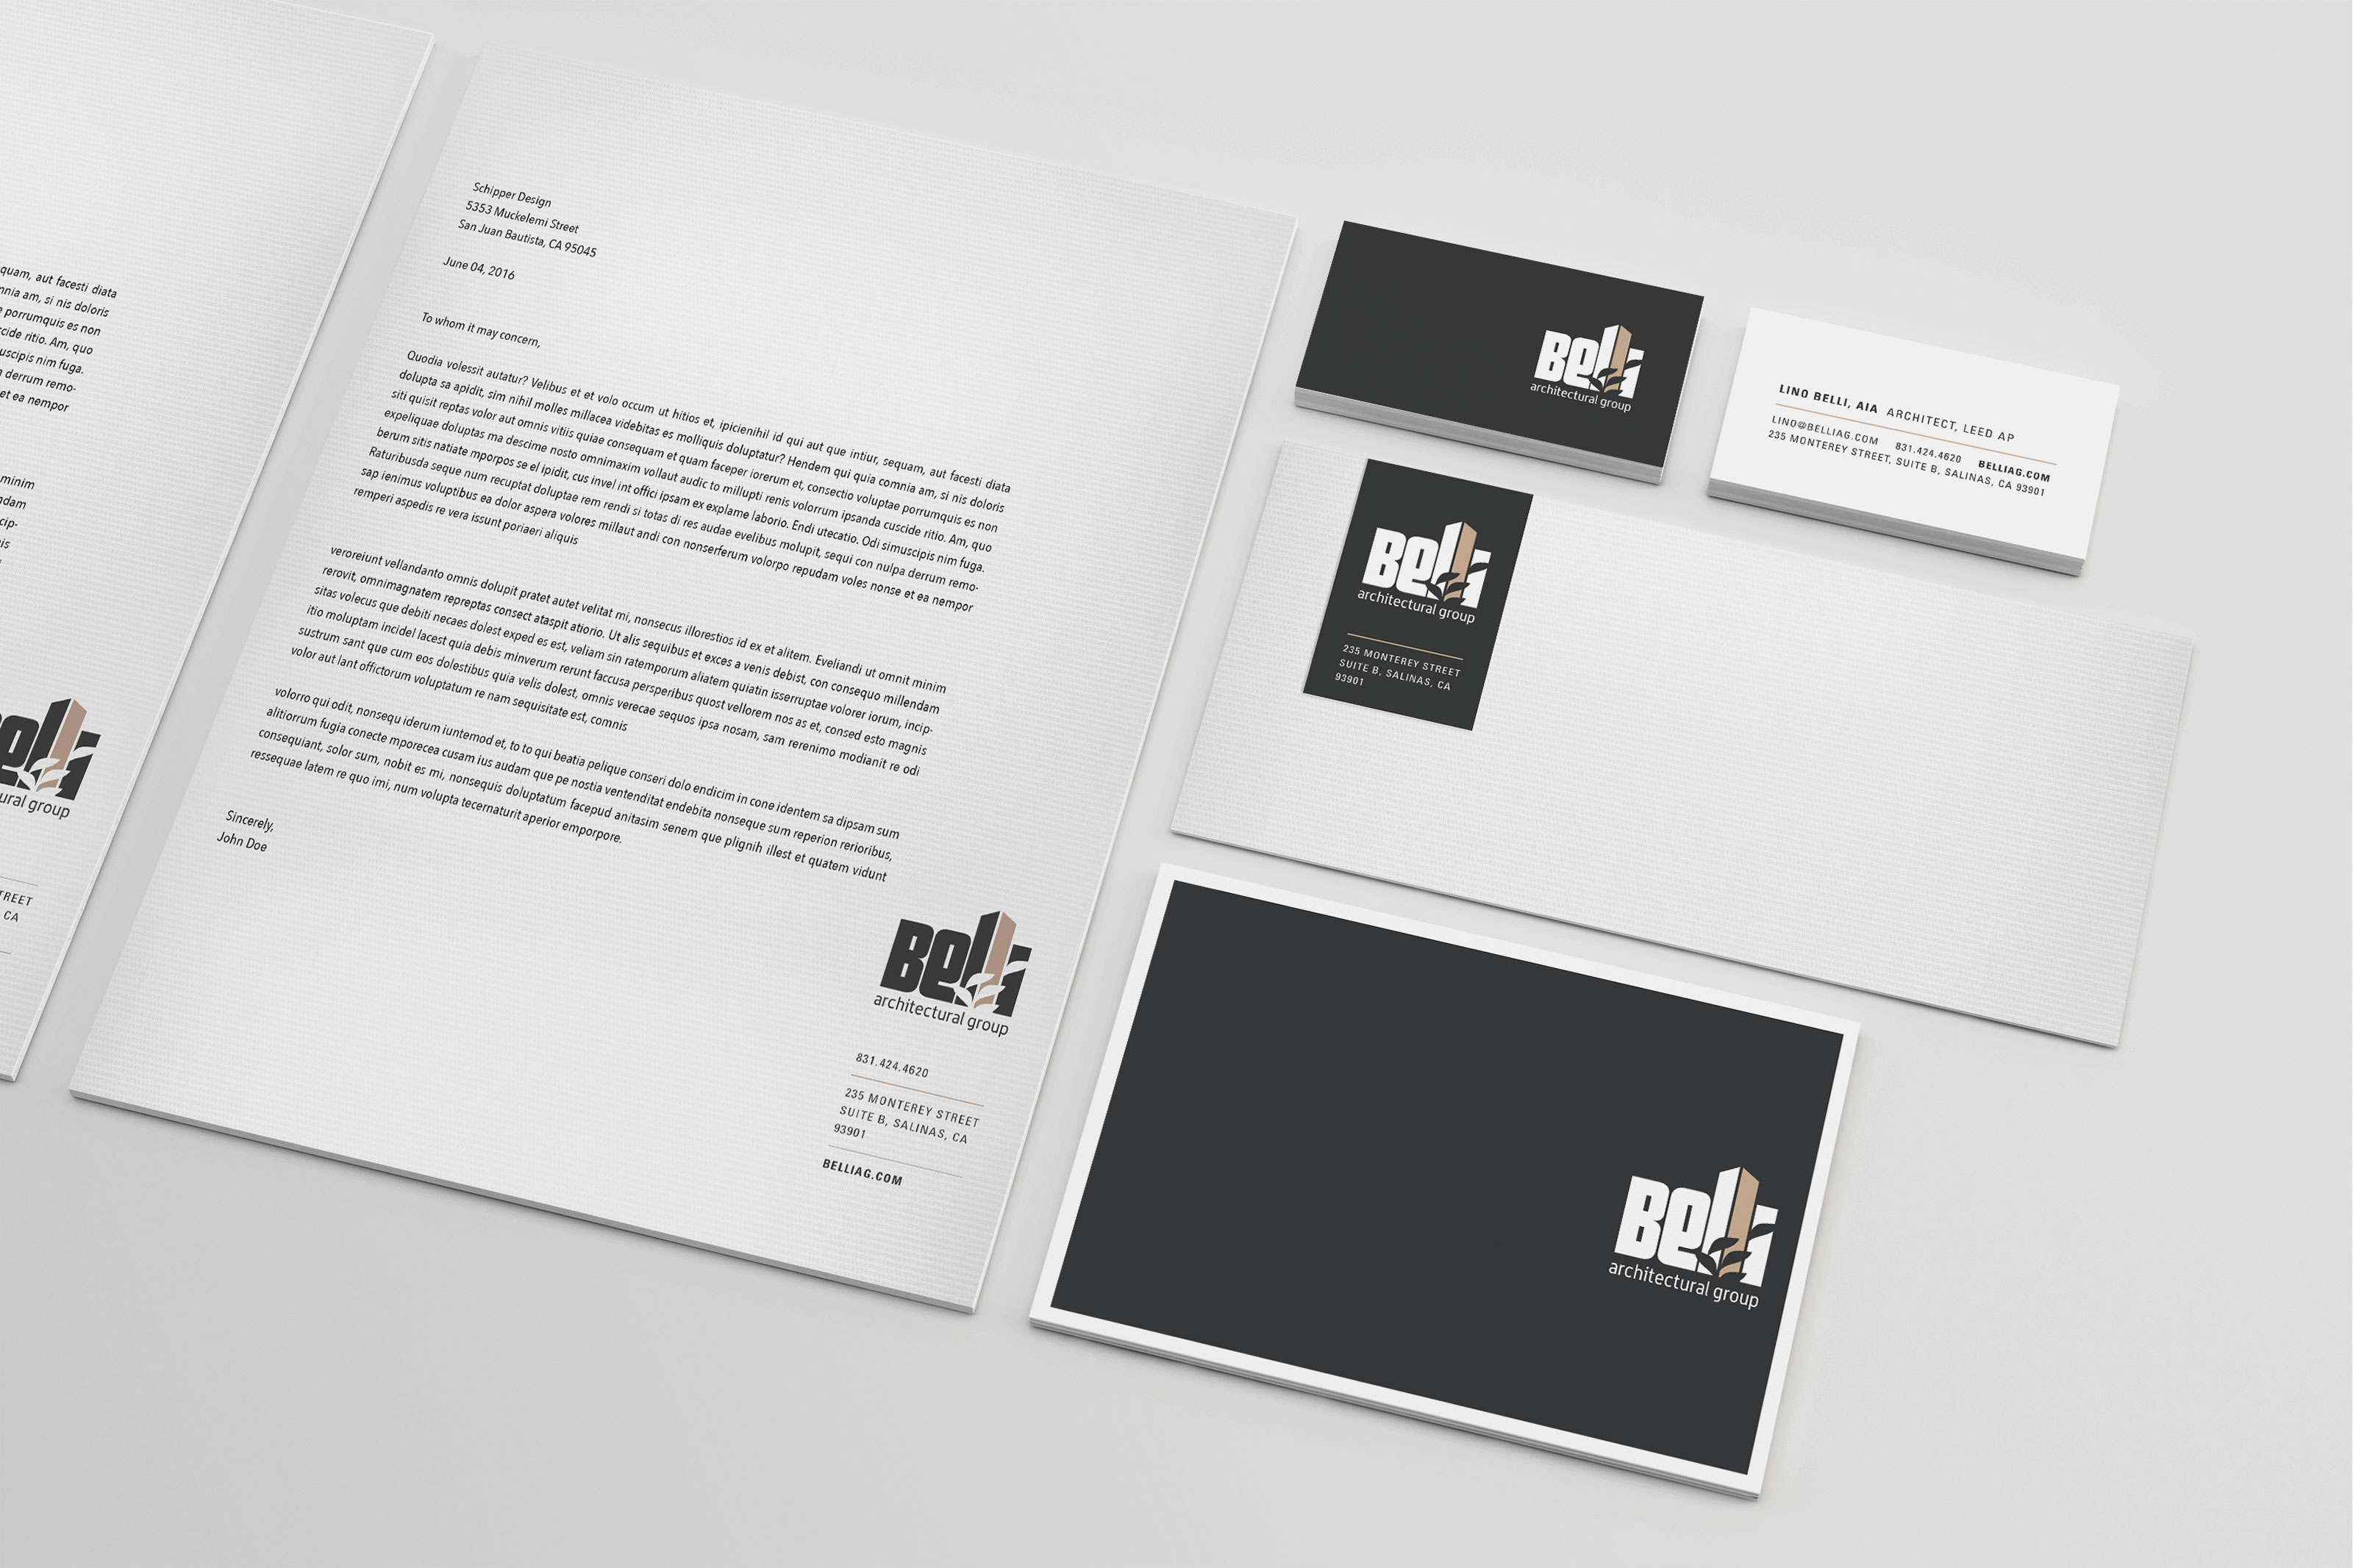 Belli Architectural Group Stationery, Business Cards, Letterhead Design